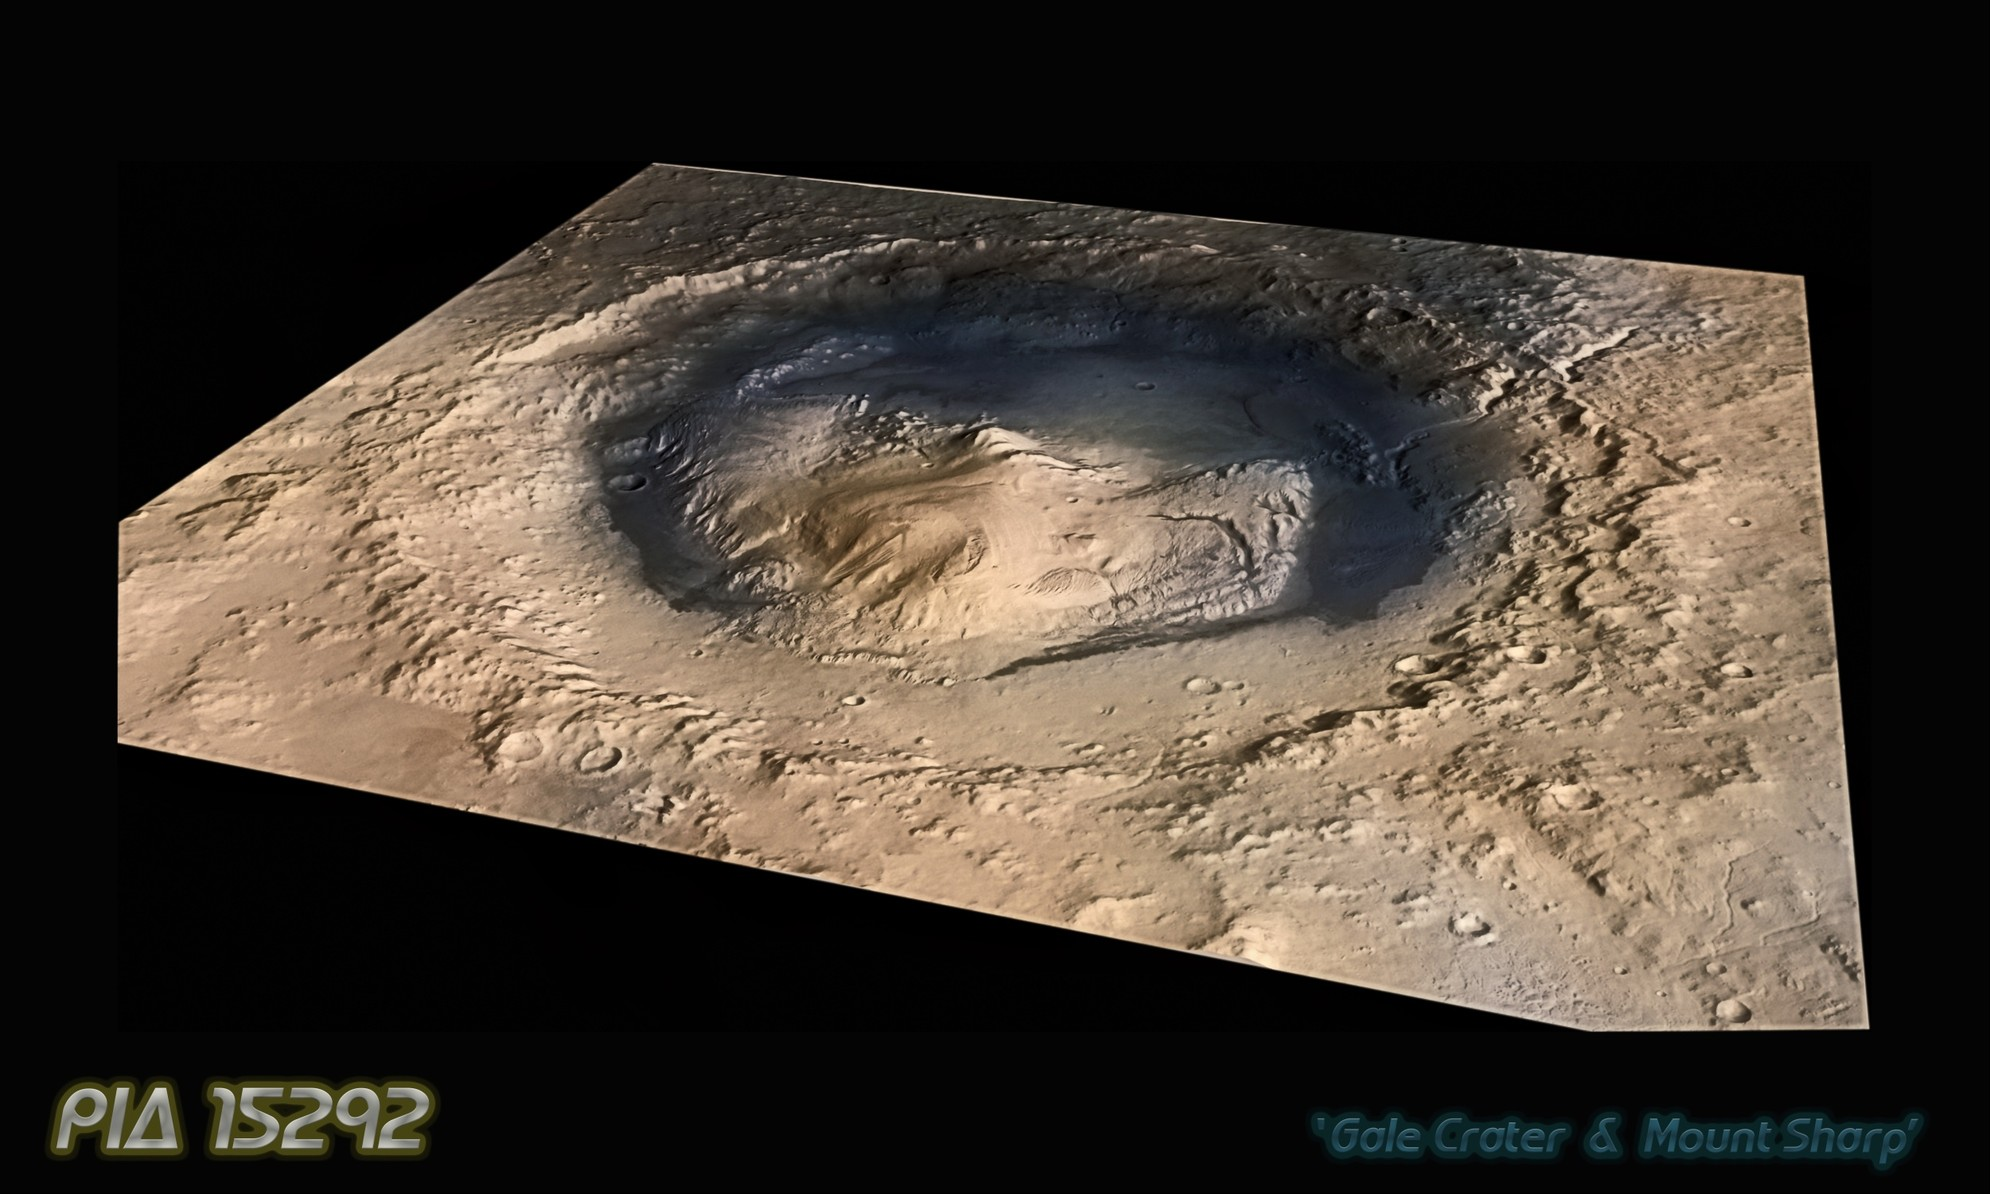 PIA 15292 - 'Mount Sharp' Inside Gale Crater (Oblique view)